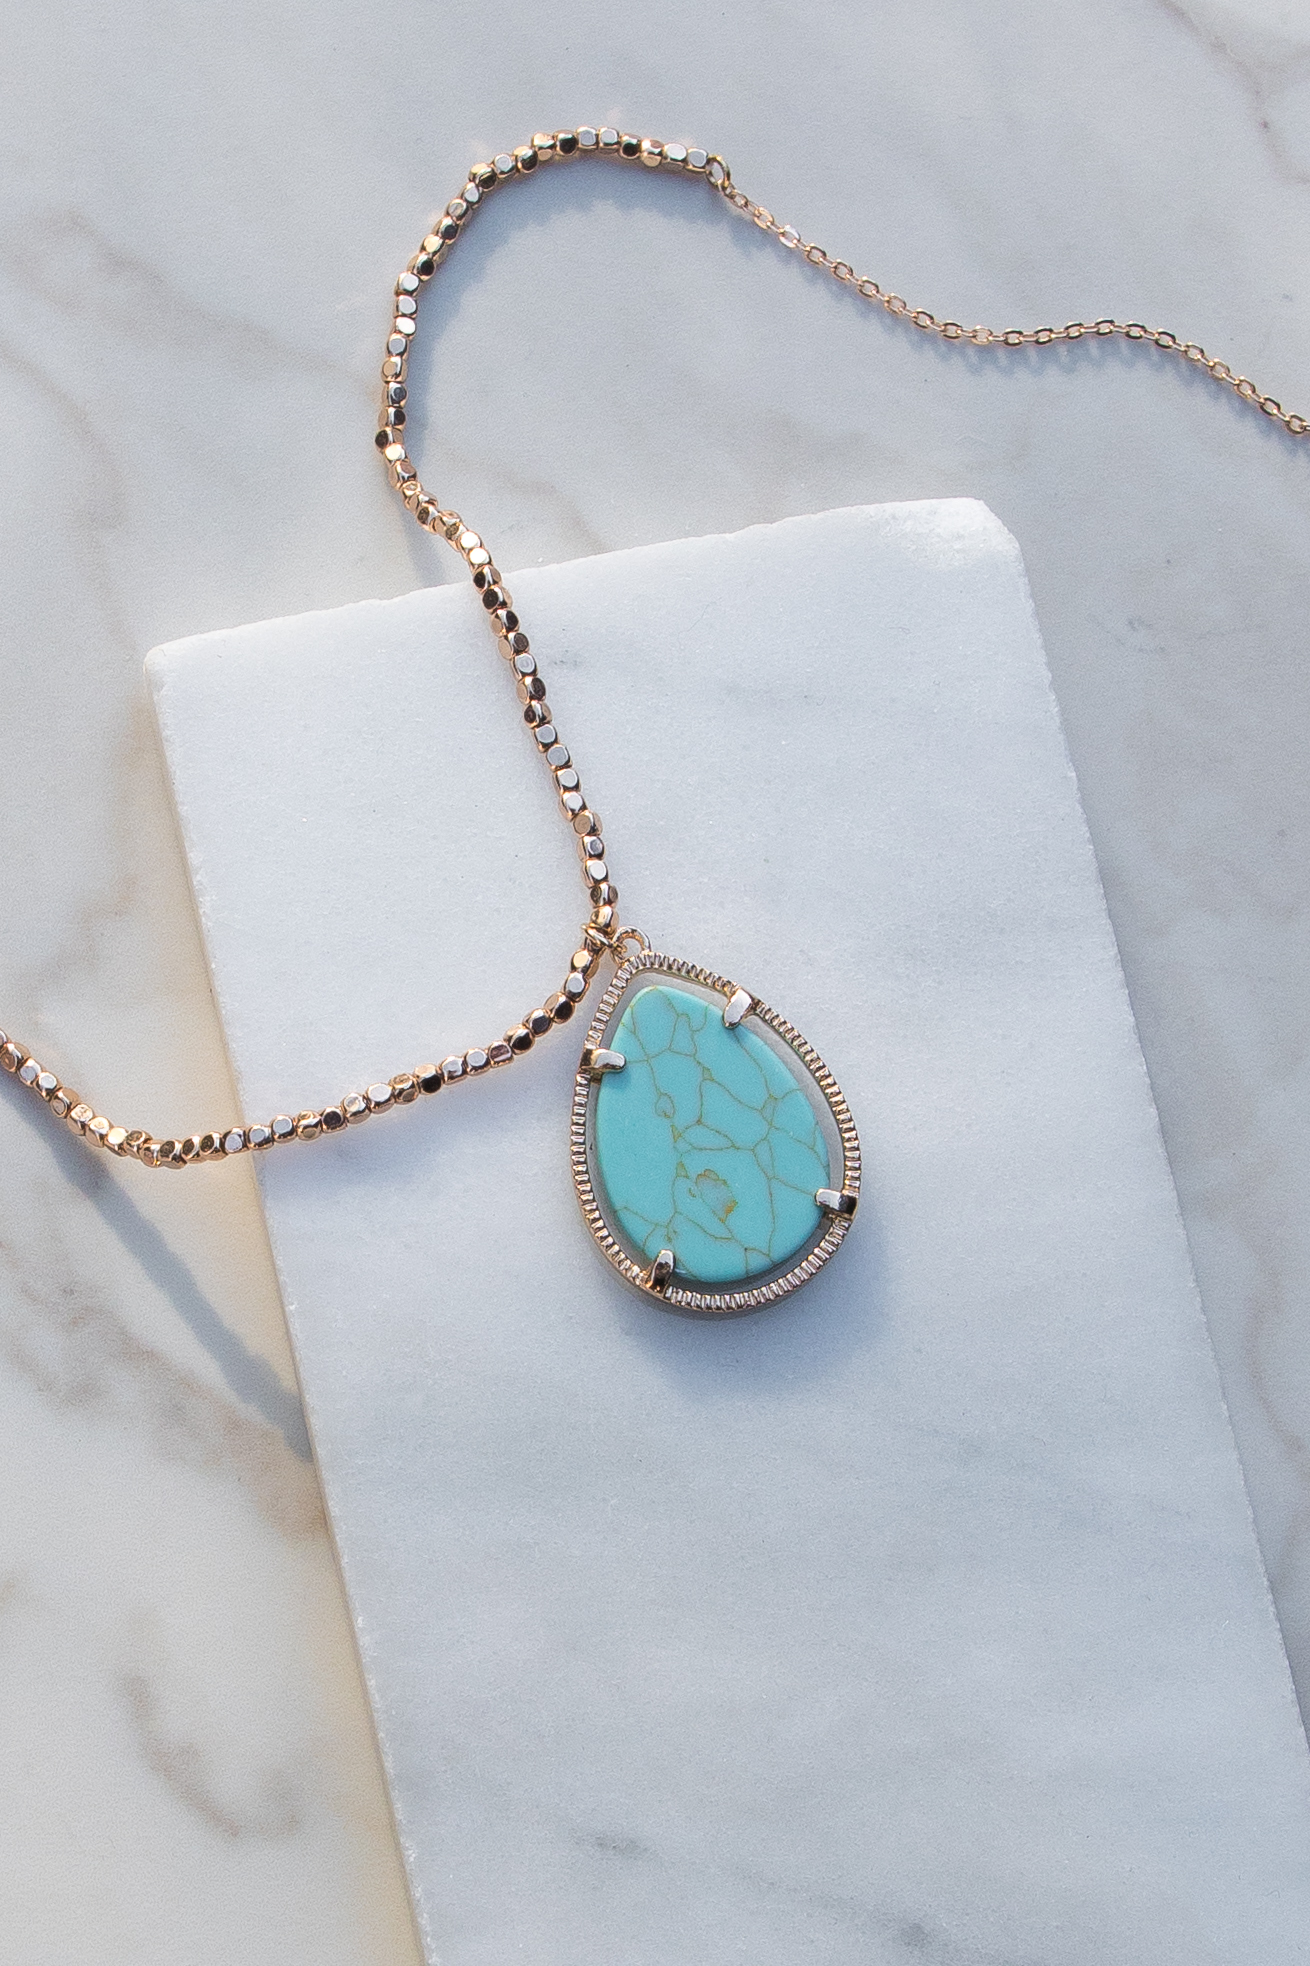 Gold Necklace with Beaded Details and Turquoise Pendant